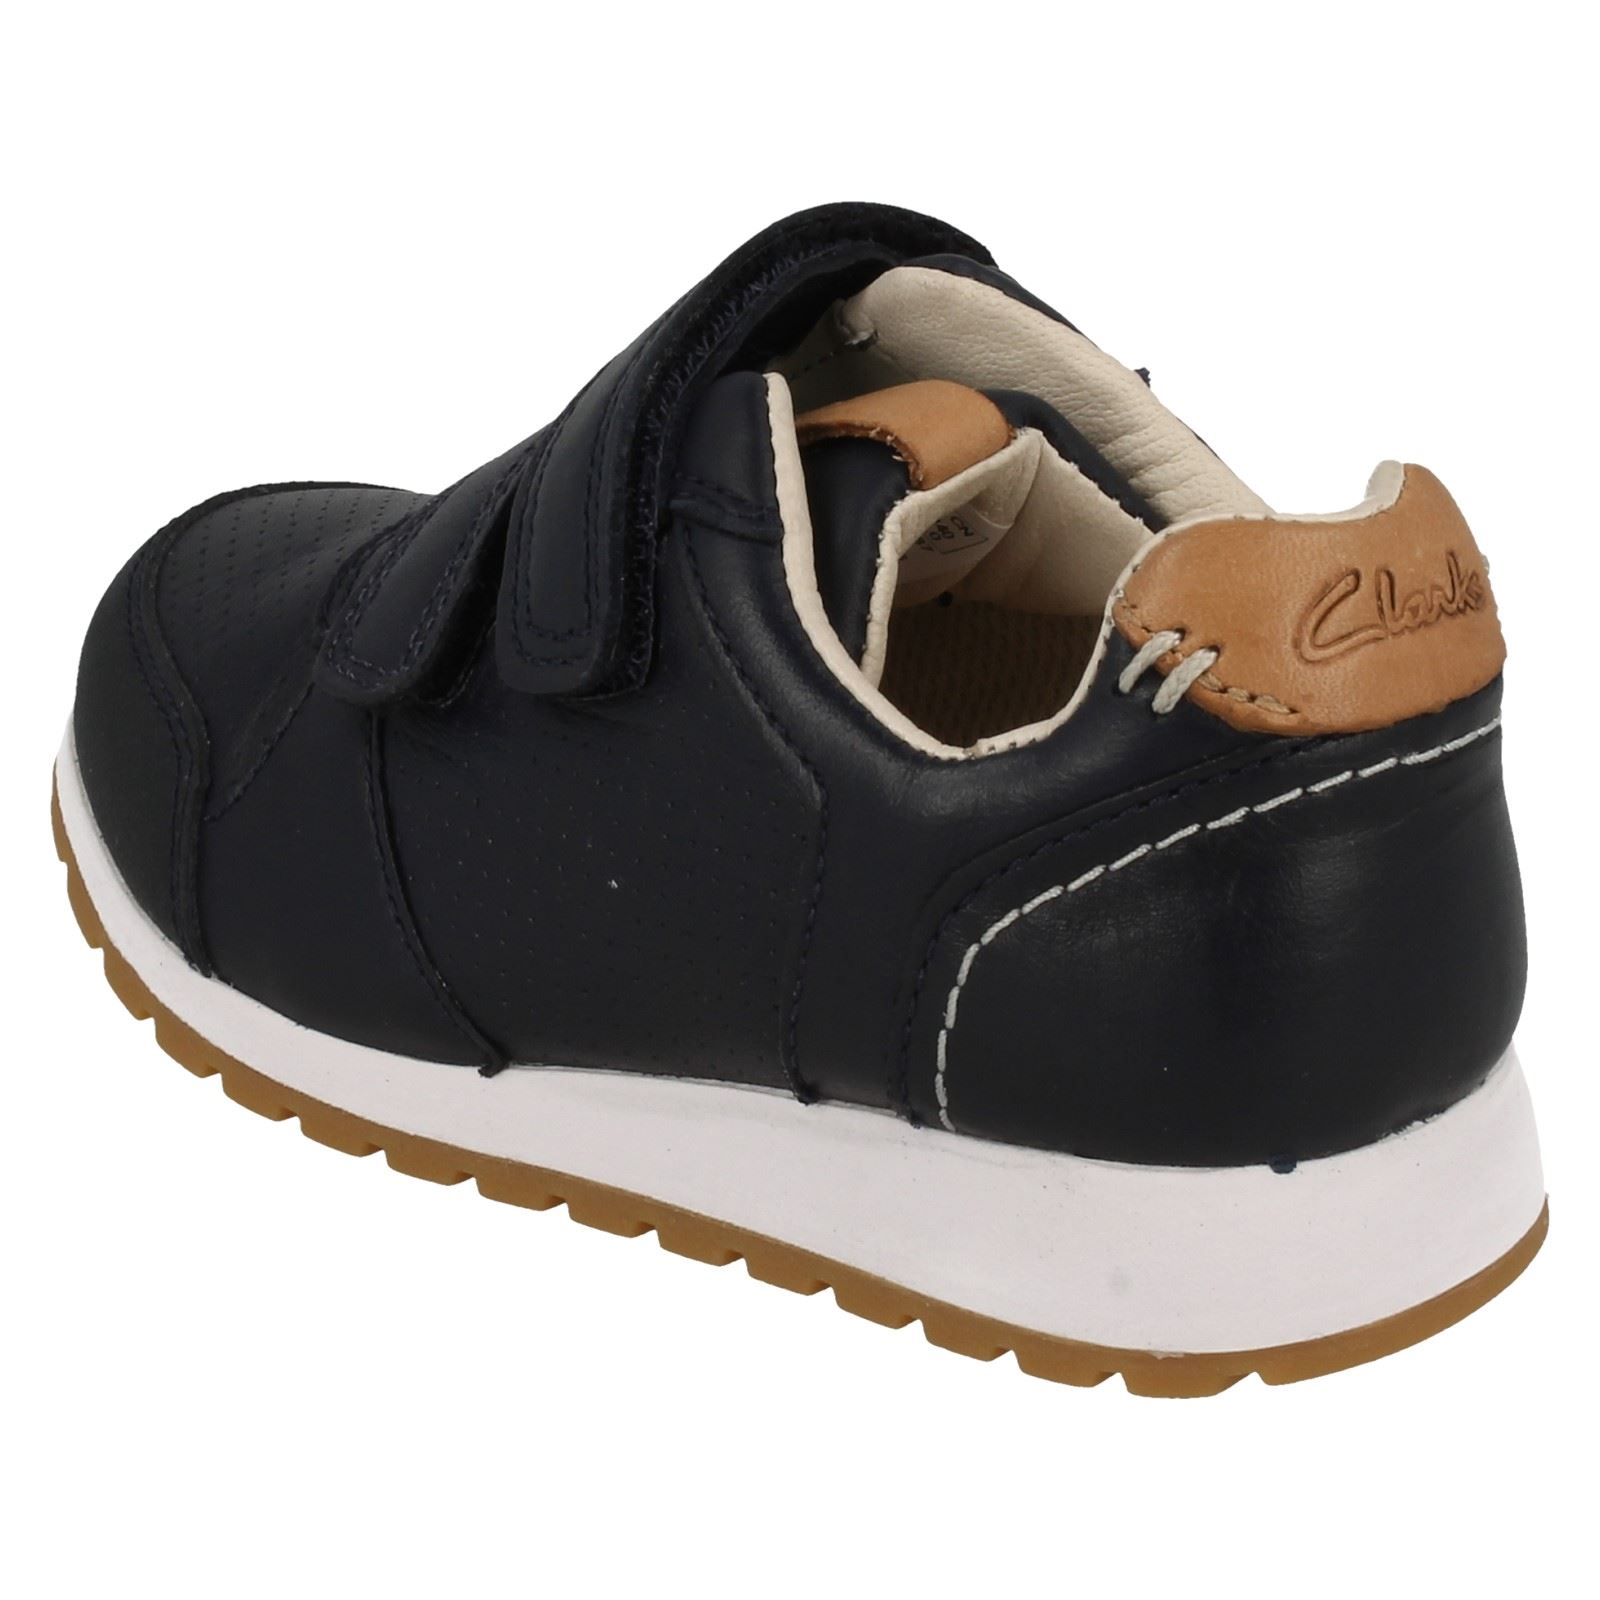 Boys Clarks Stylish Casual Shoes Zest Tex